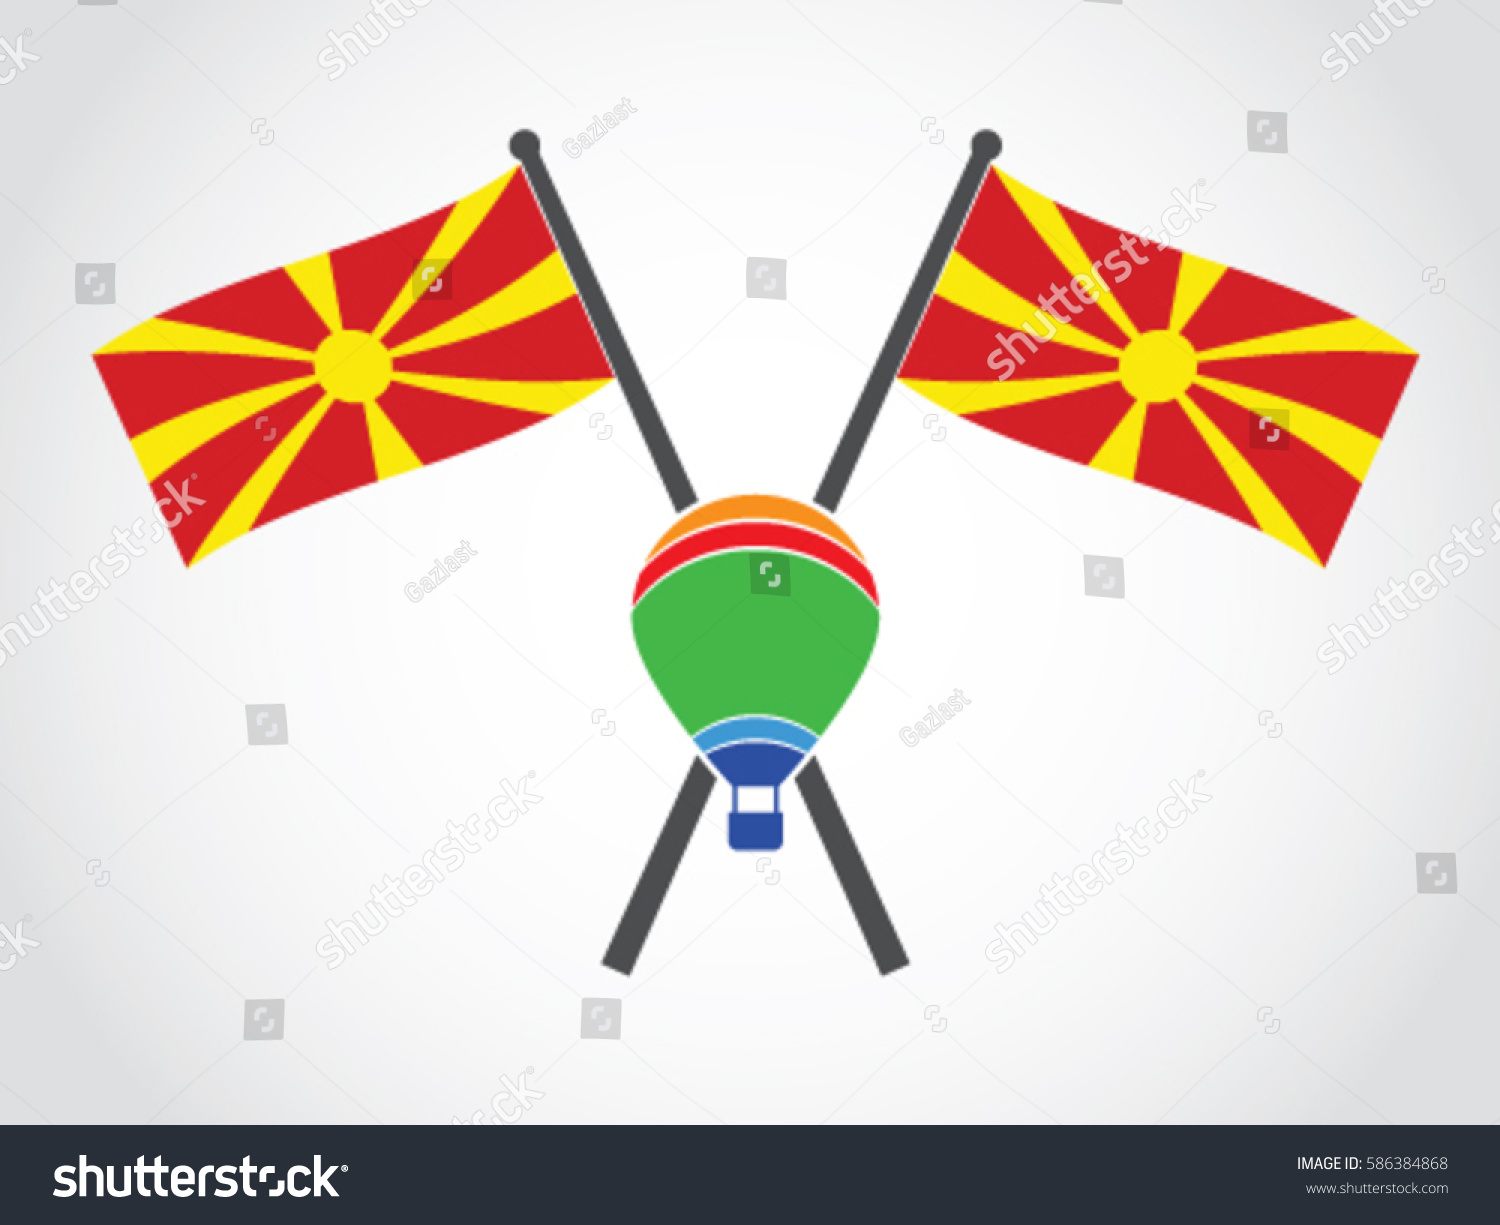 macedonia tourist attraction Macedonia - hotel & restaurant equipment/tourismmacedonia - hotels/restaurant/tourism this is a best prospect industry sector for this country.